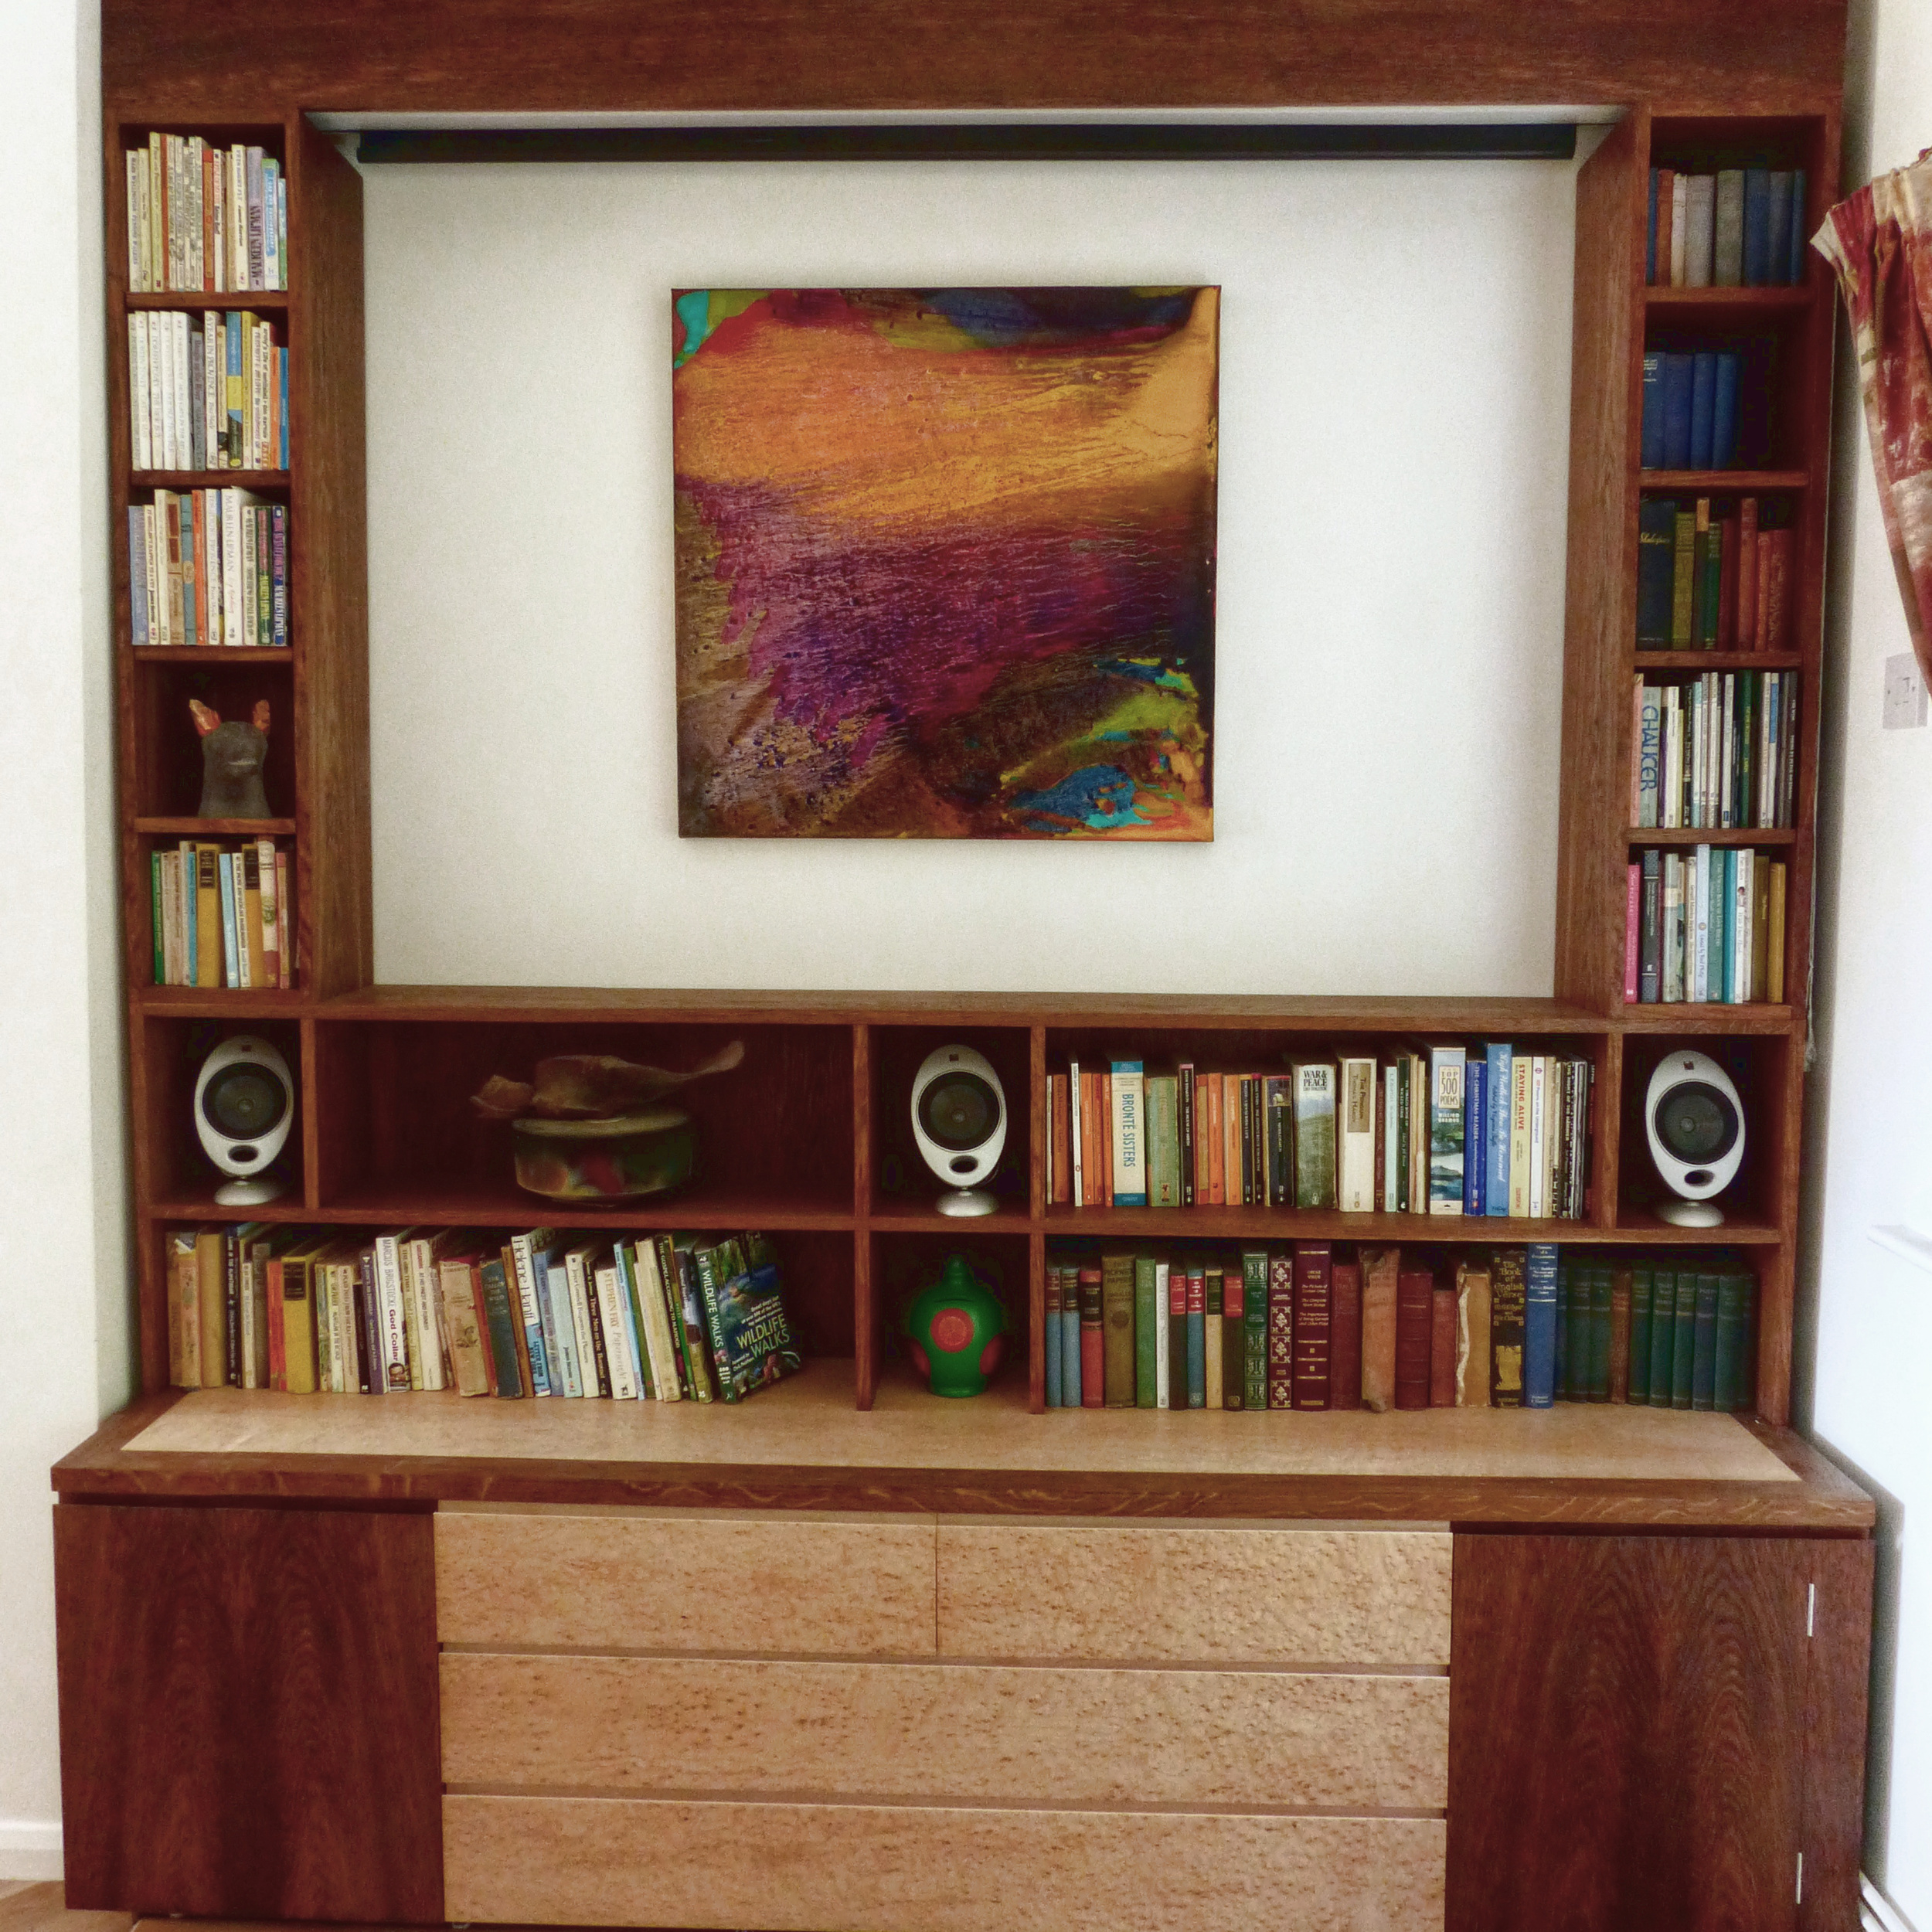 The Vatch Projector/Media Cabinet